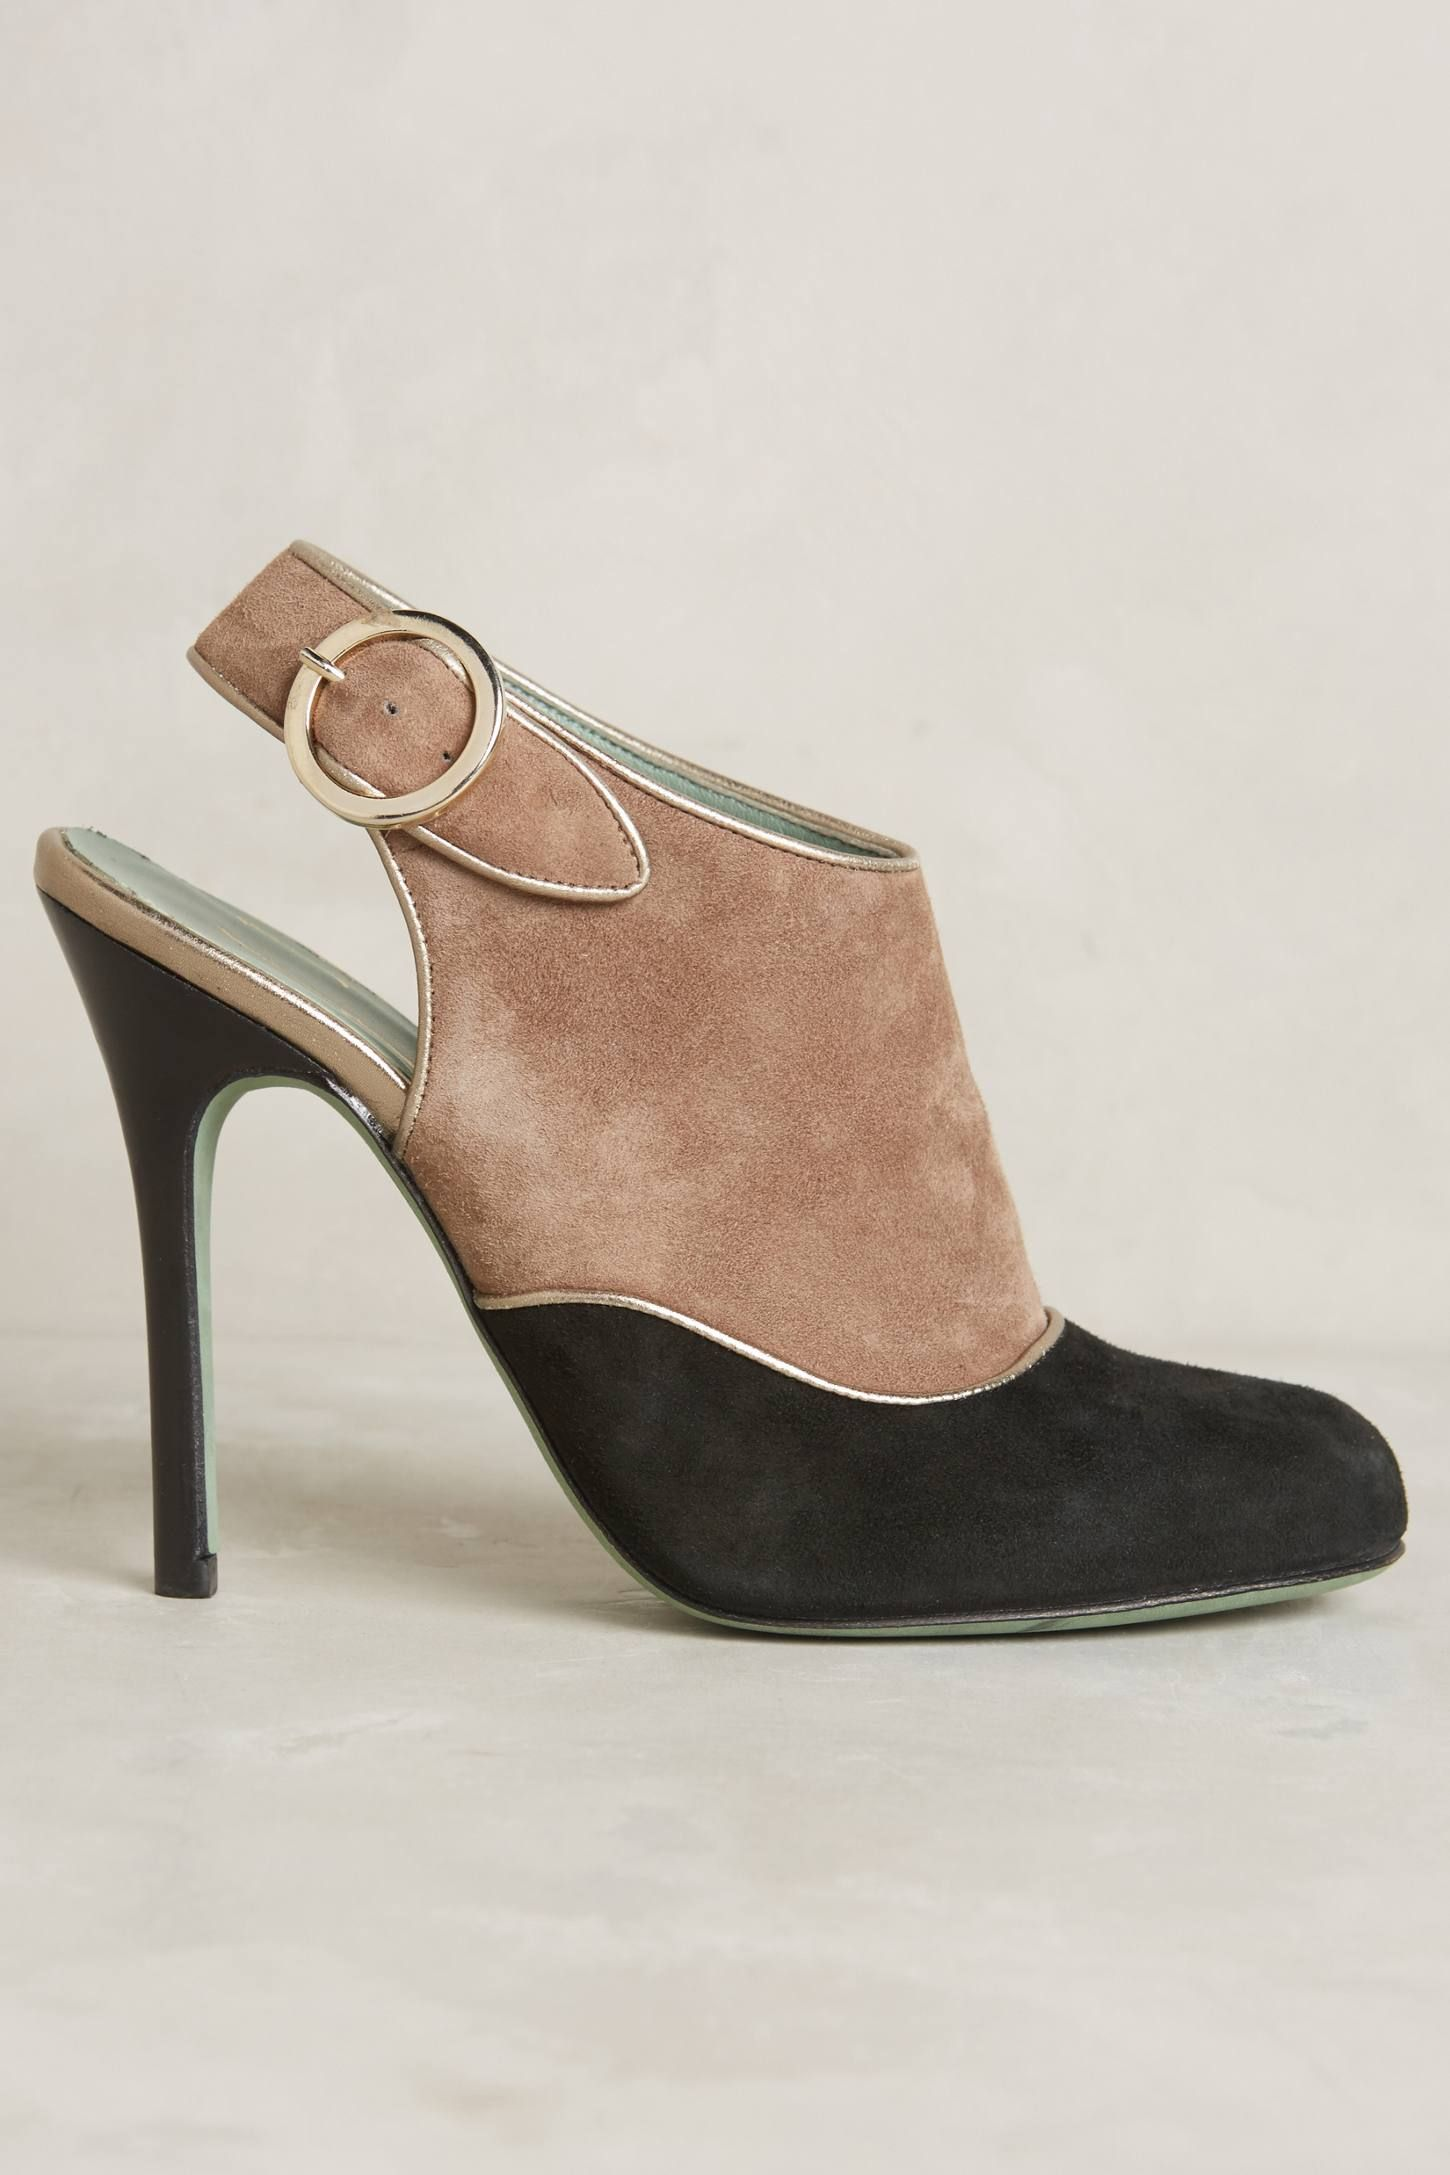 Paola d'Arcano Morcote Heels | Pinned by topista.com